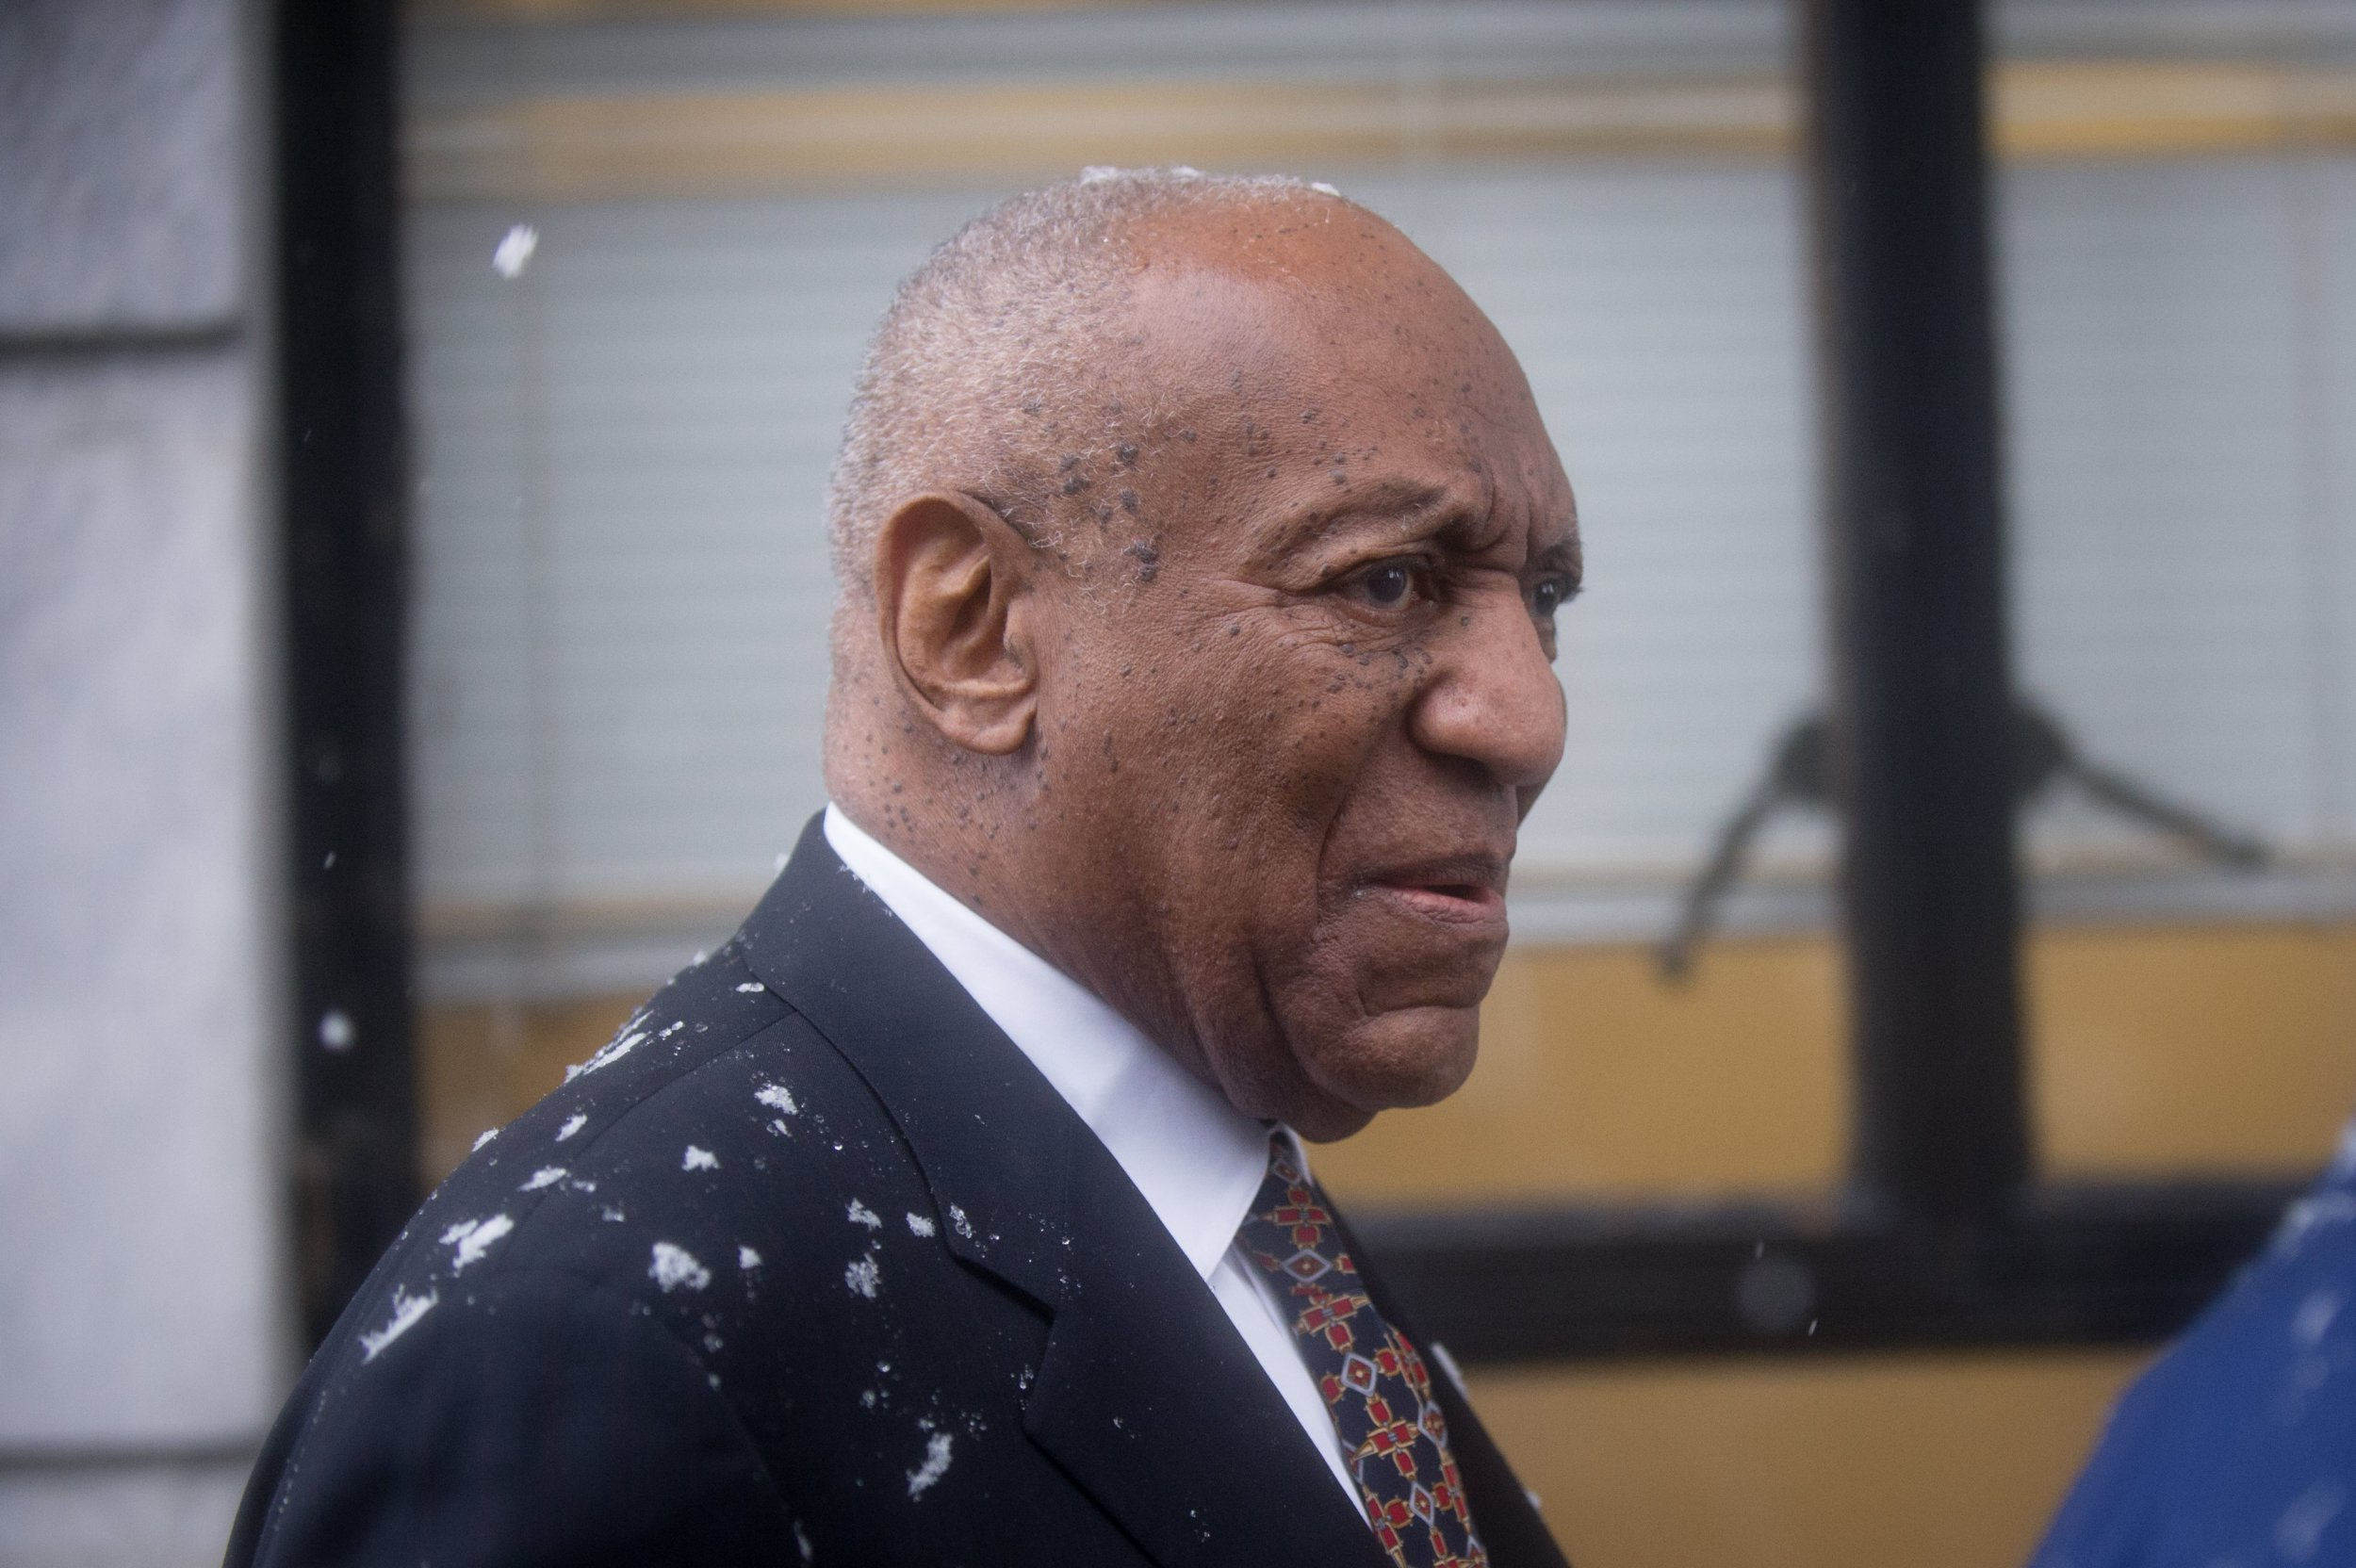 Bill Cosby arrives at court as sexual assault retrial begins